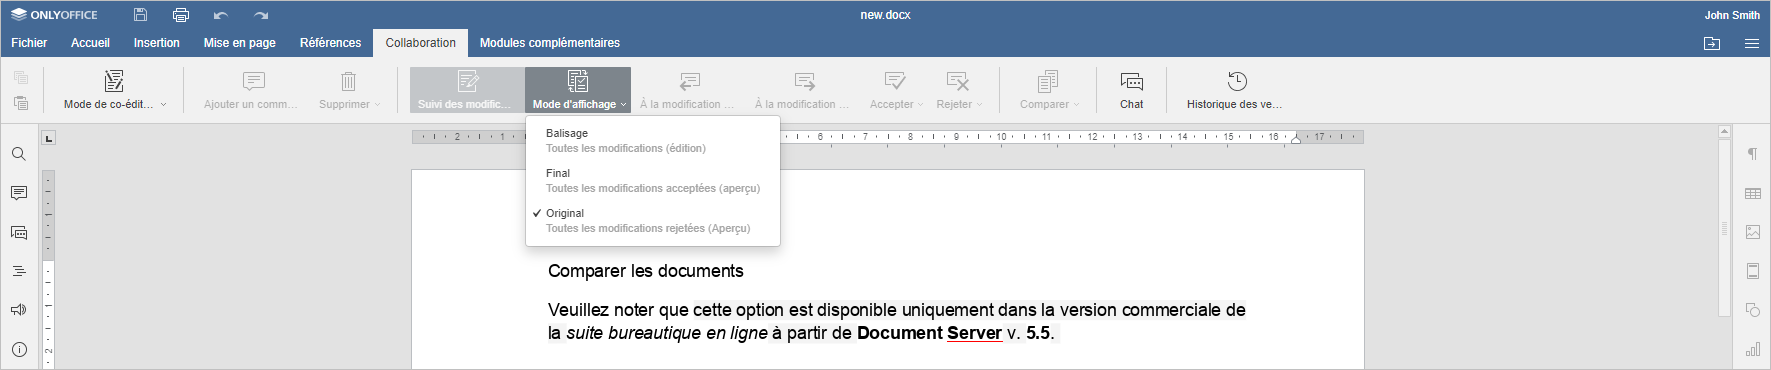 Comparer les document - Original